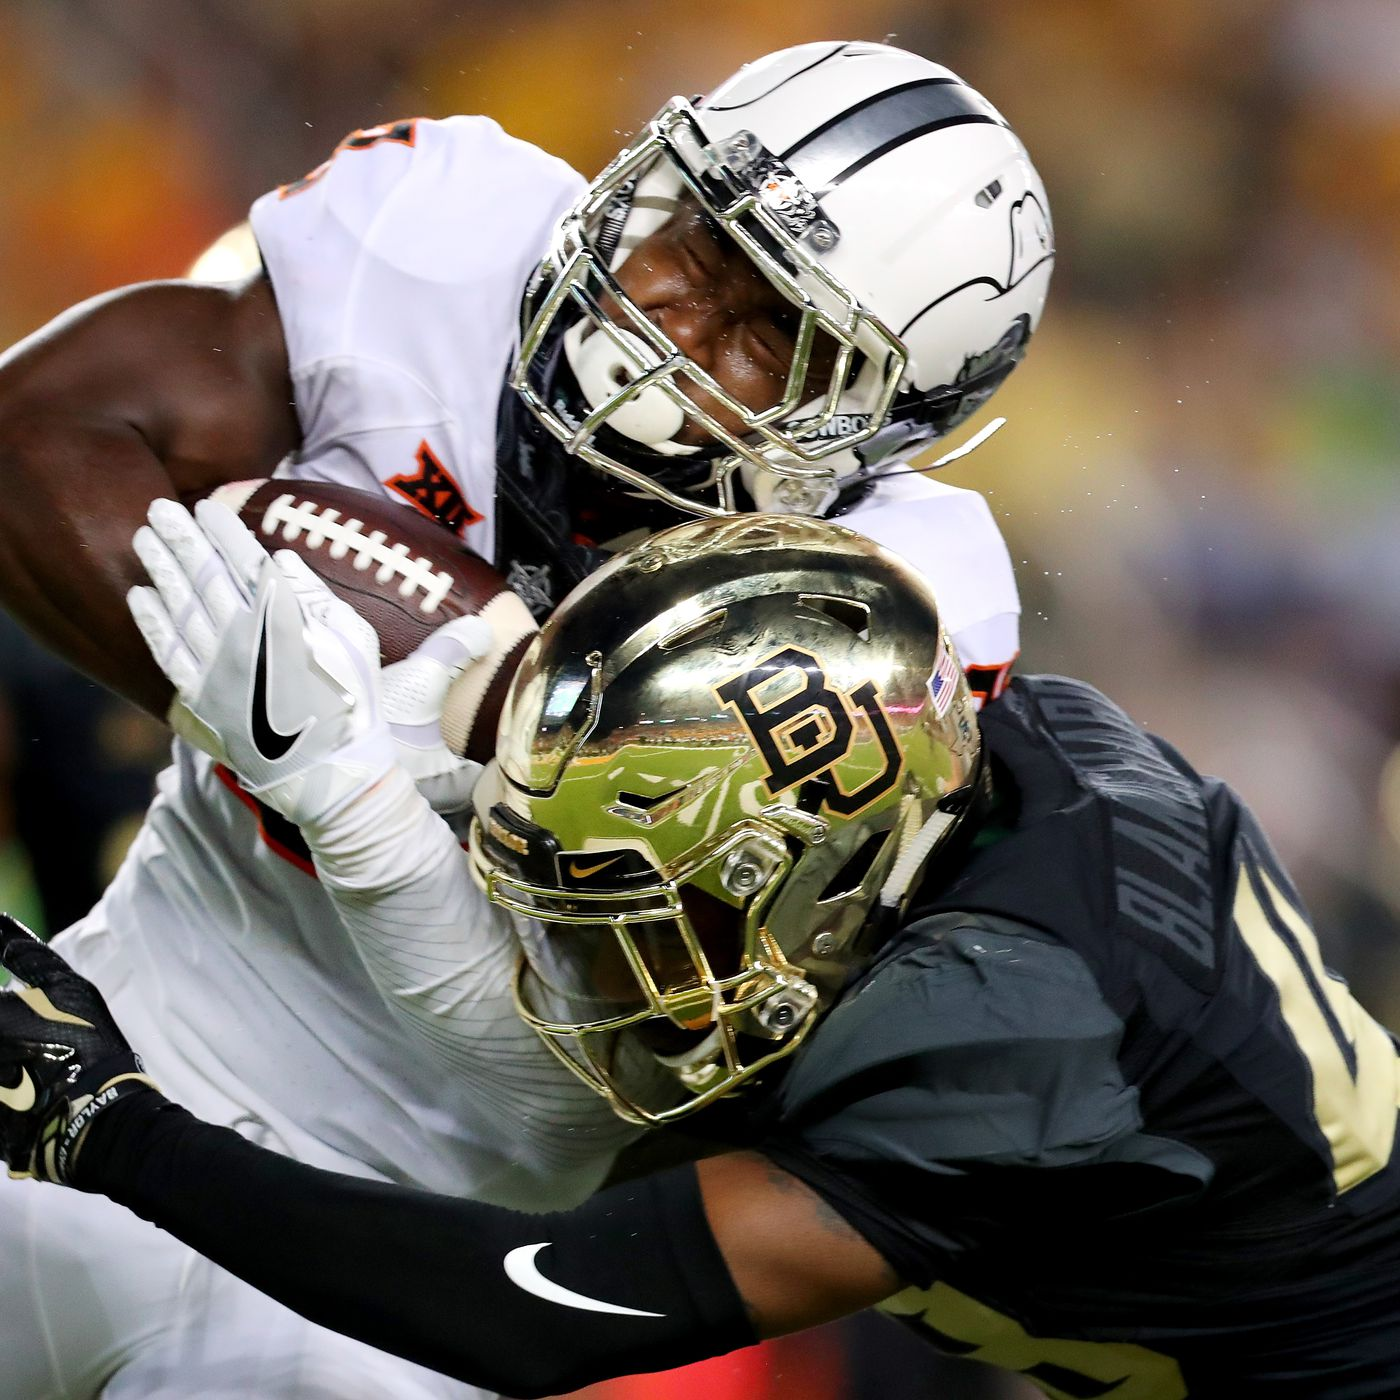 Previewing The 2017 Football Schedule Baylor Cowboys Ride For Free